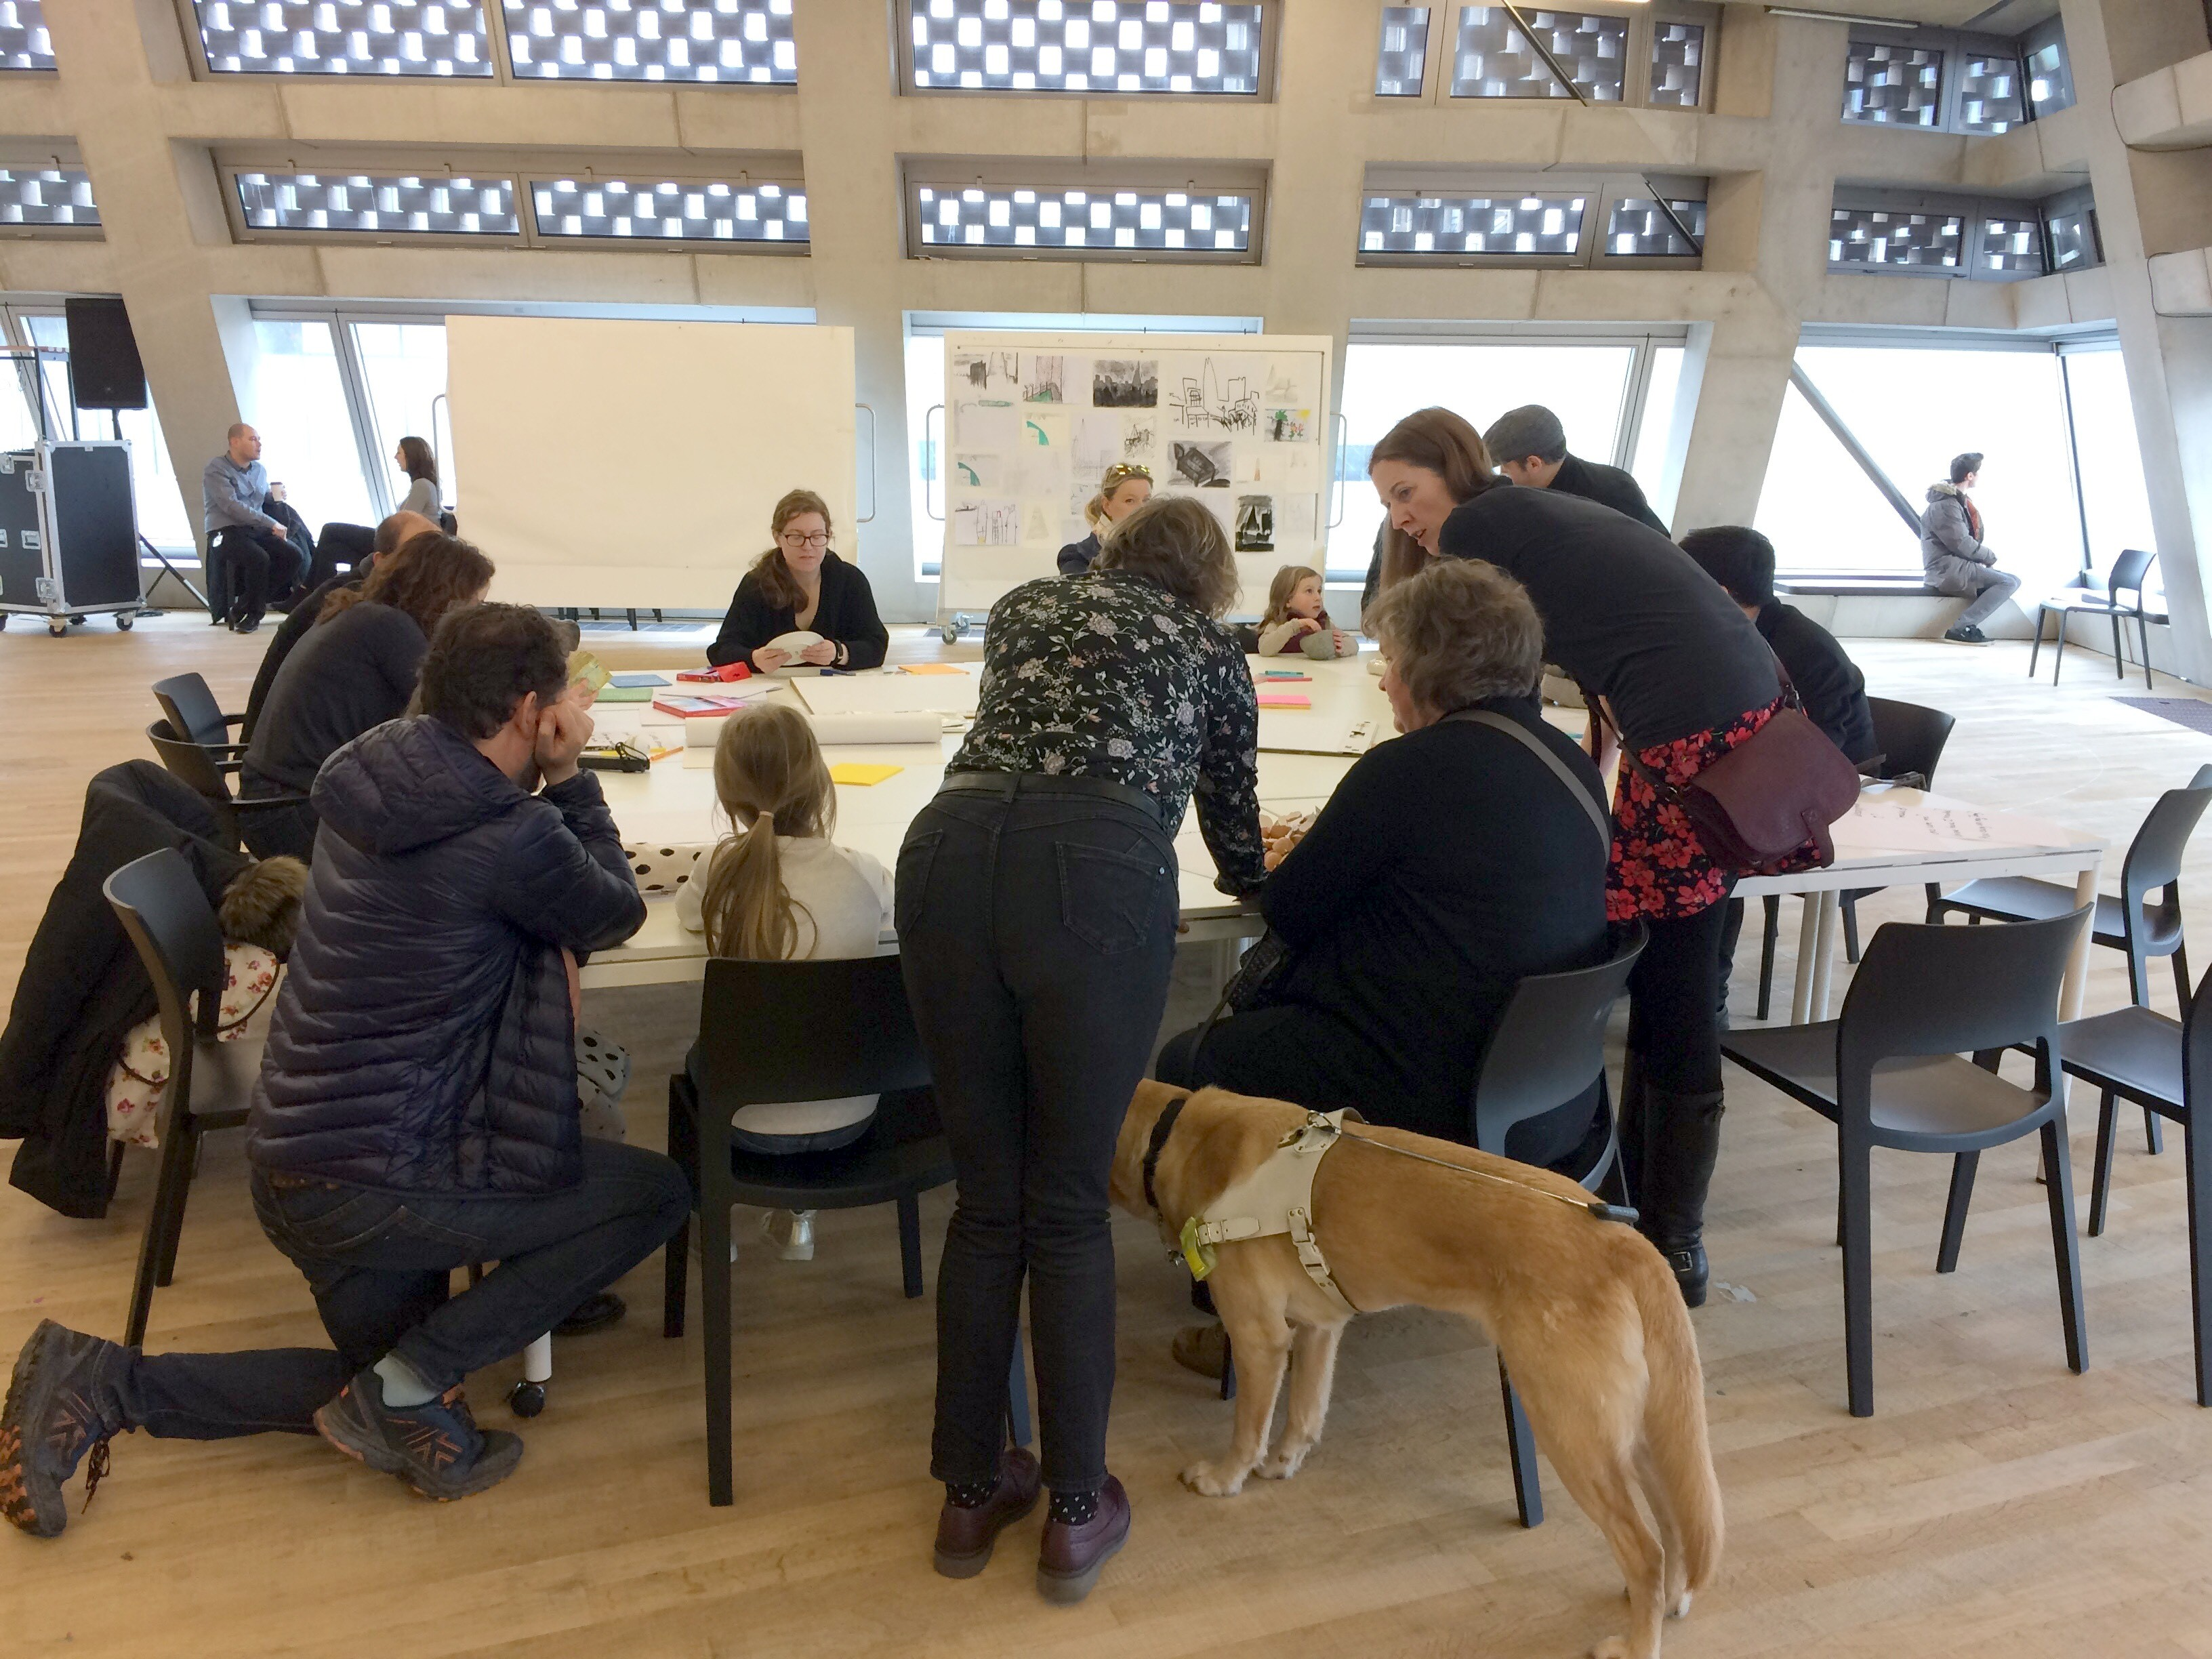 participants crowd around a table on which objects have been set out; an assistance dog indicates at least one of the participants is blind